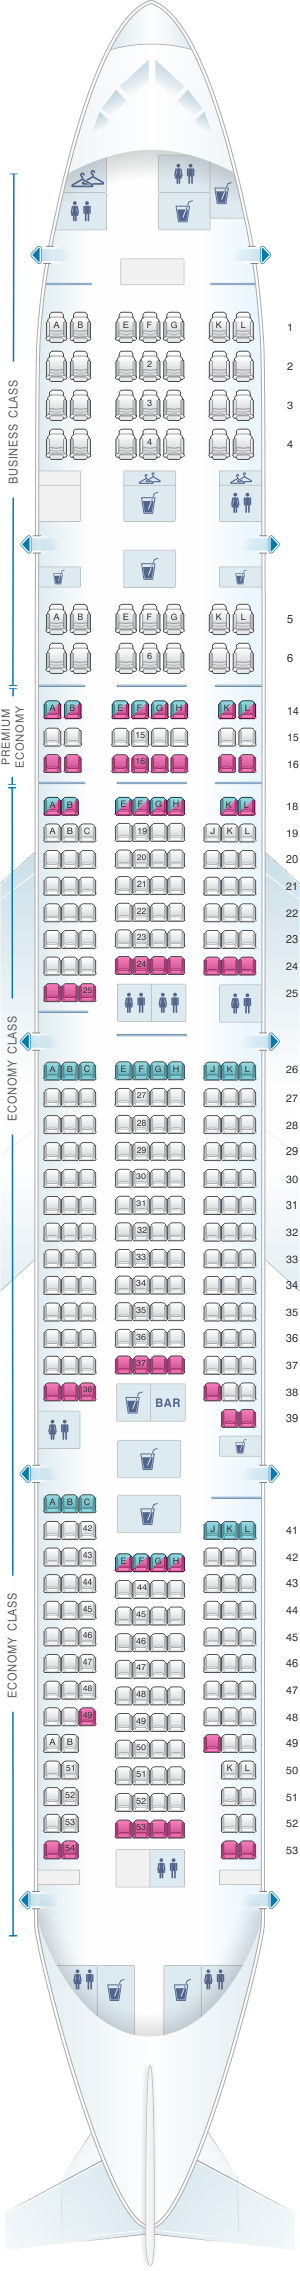 Seat map for Air France Boeing B777 300 Long-Haul International 381PAX